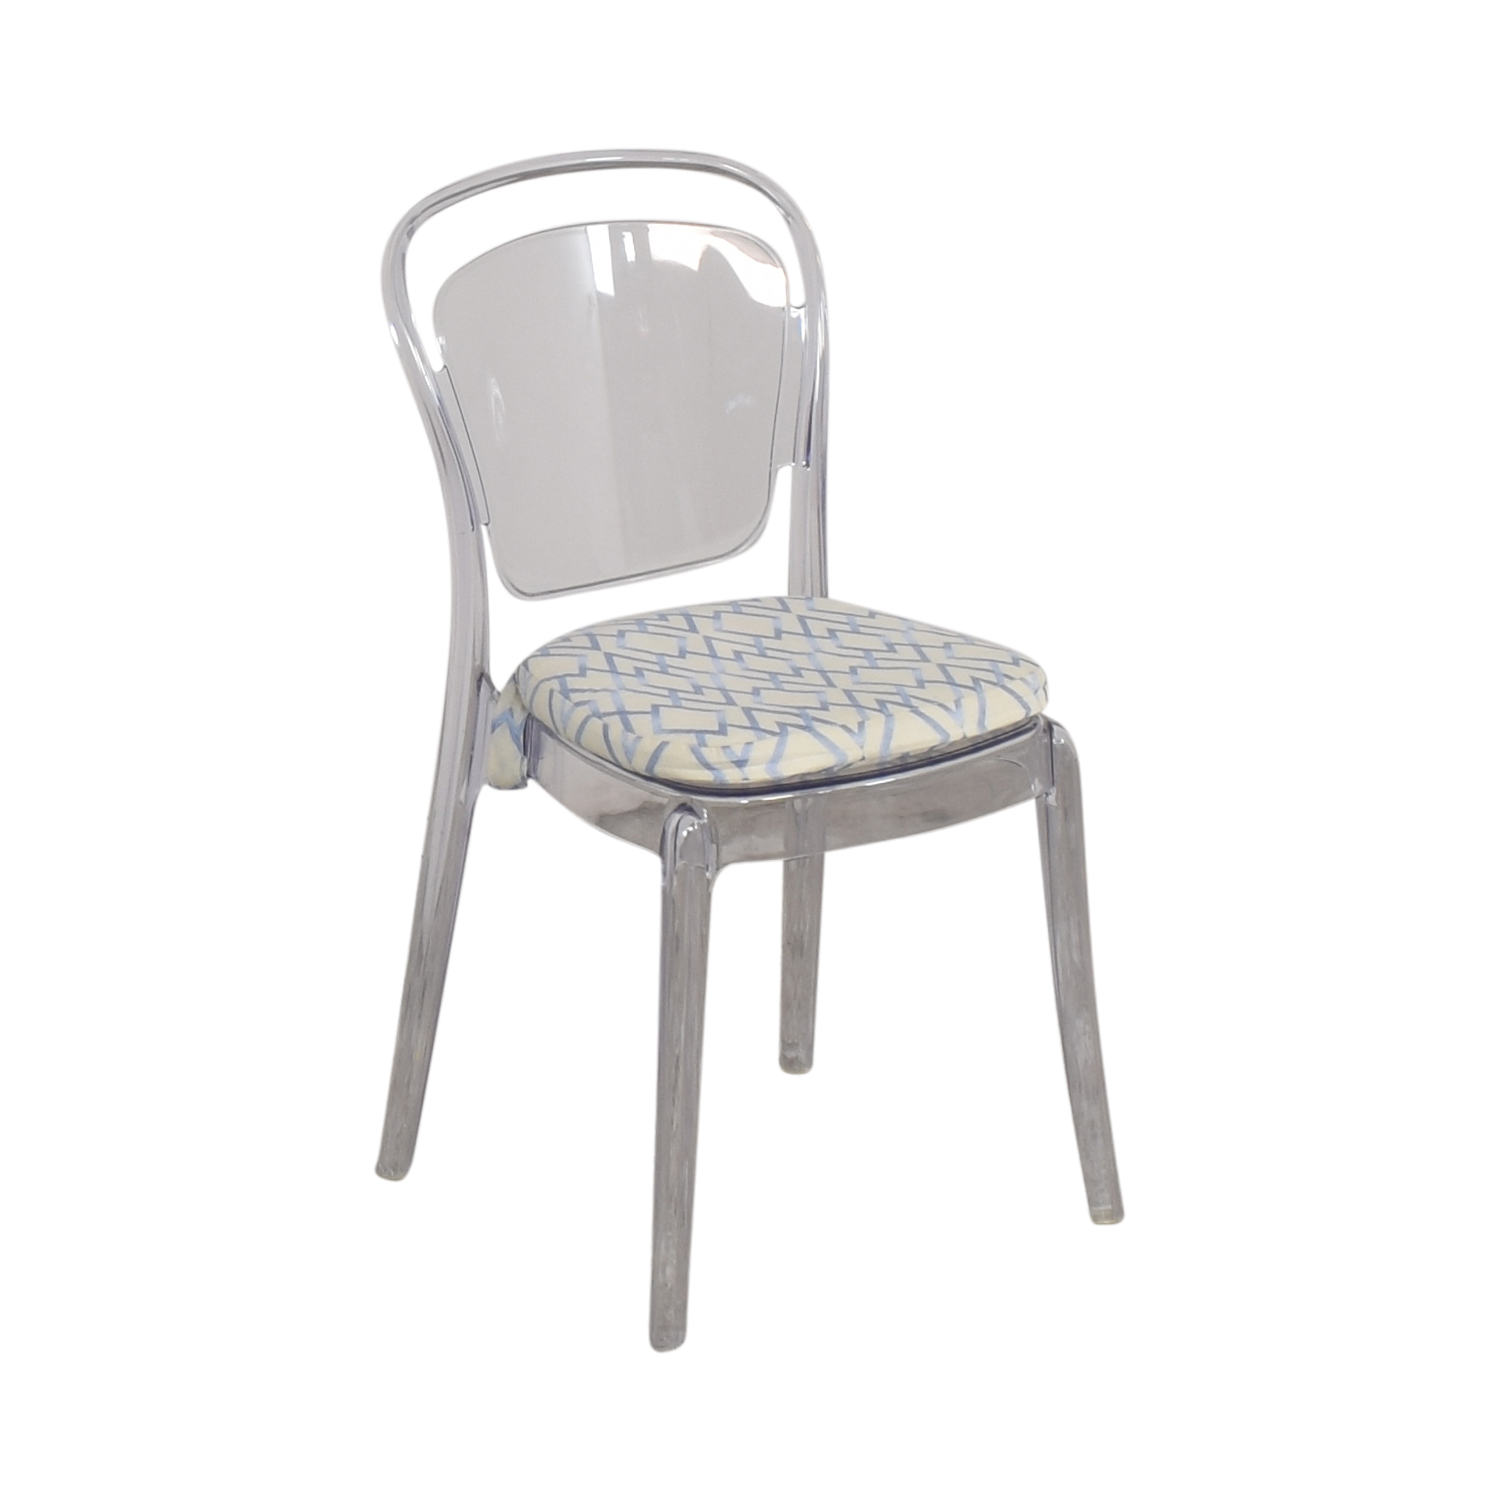 Lucite Upholstered Chair / Chairs